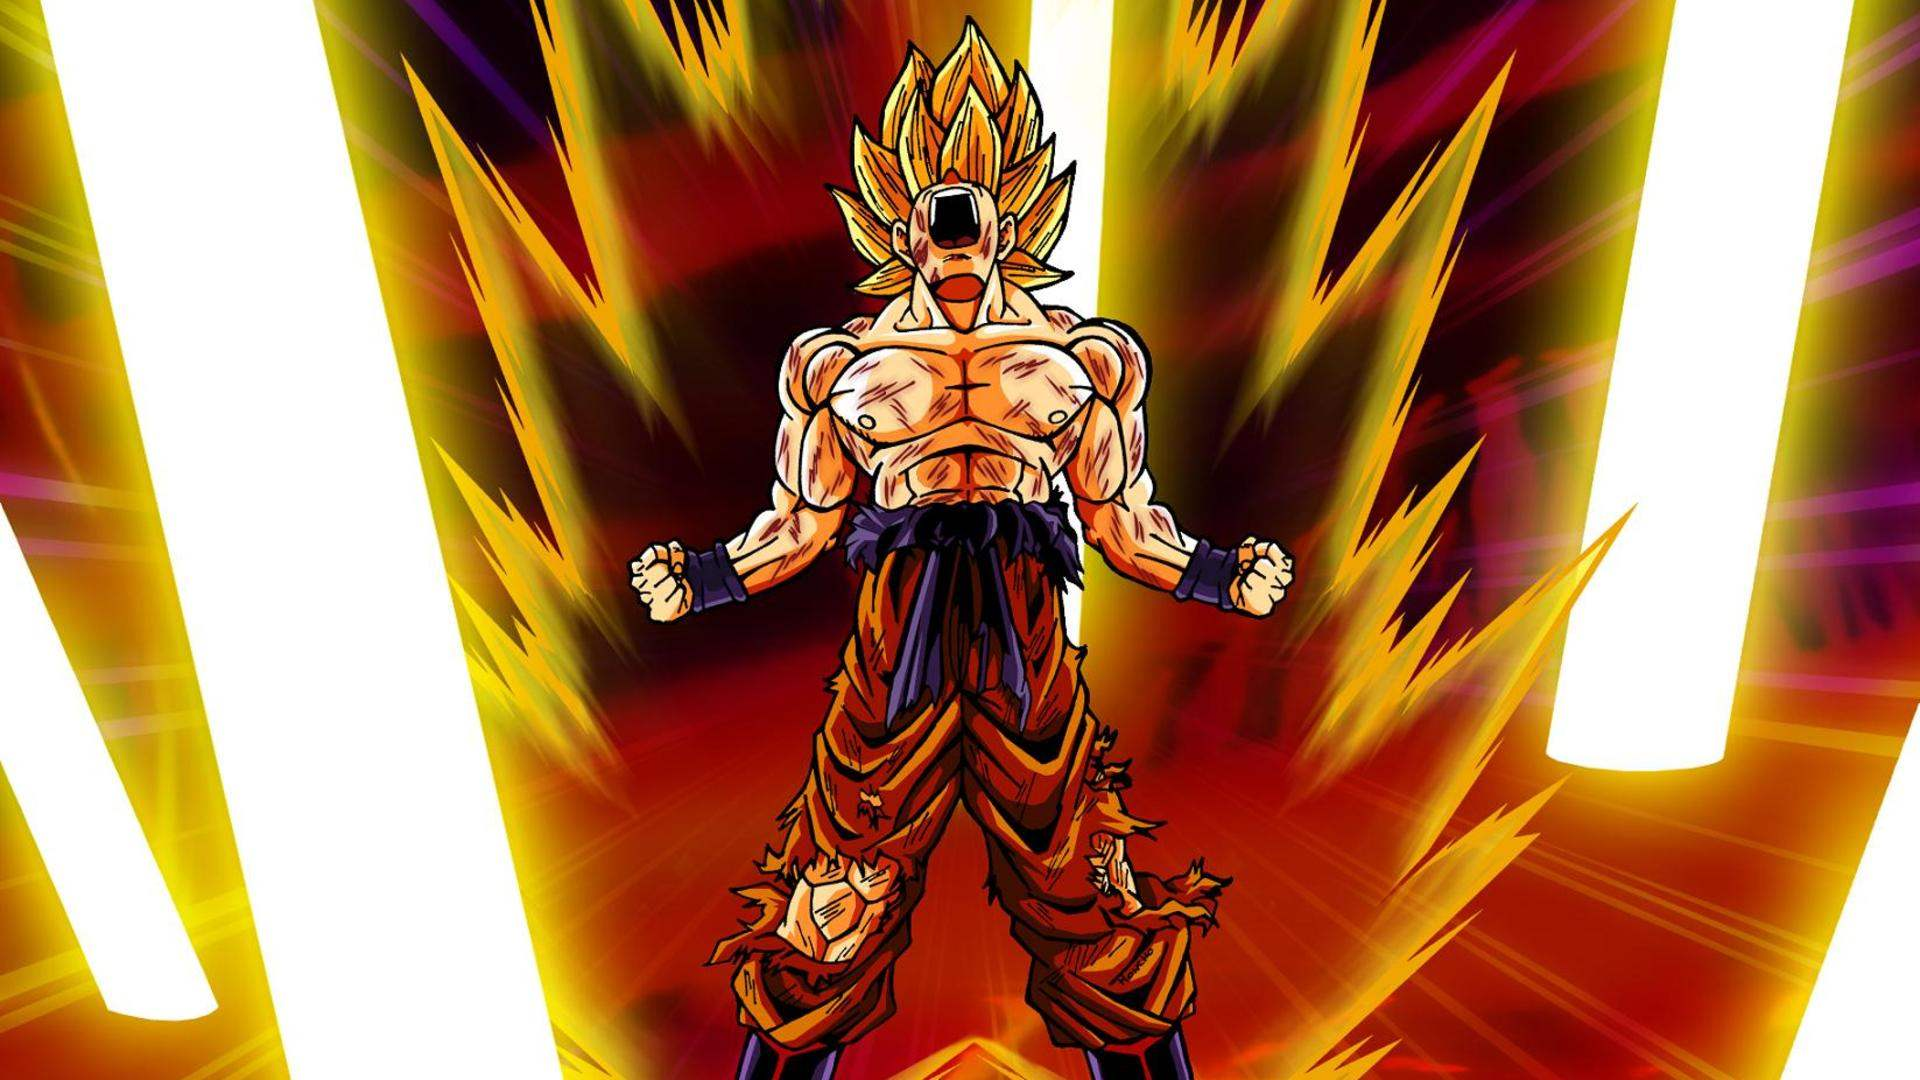 comDragon Ball Z Goku Super Saiyan 183 Hd Wallpapers in Cartoons 1920x1080